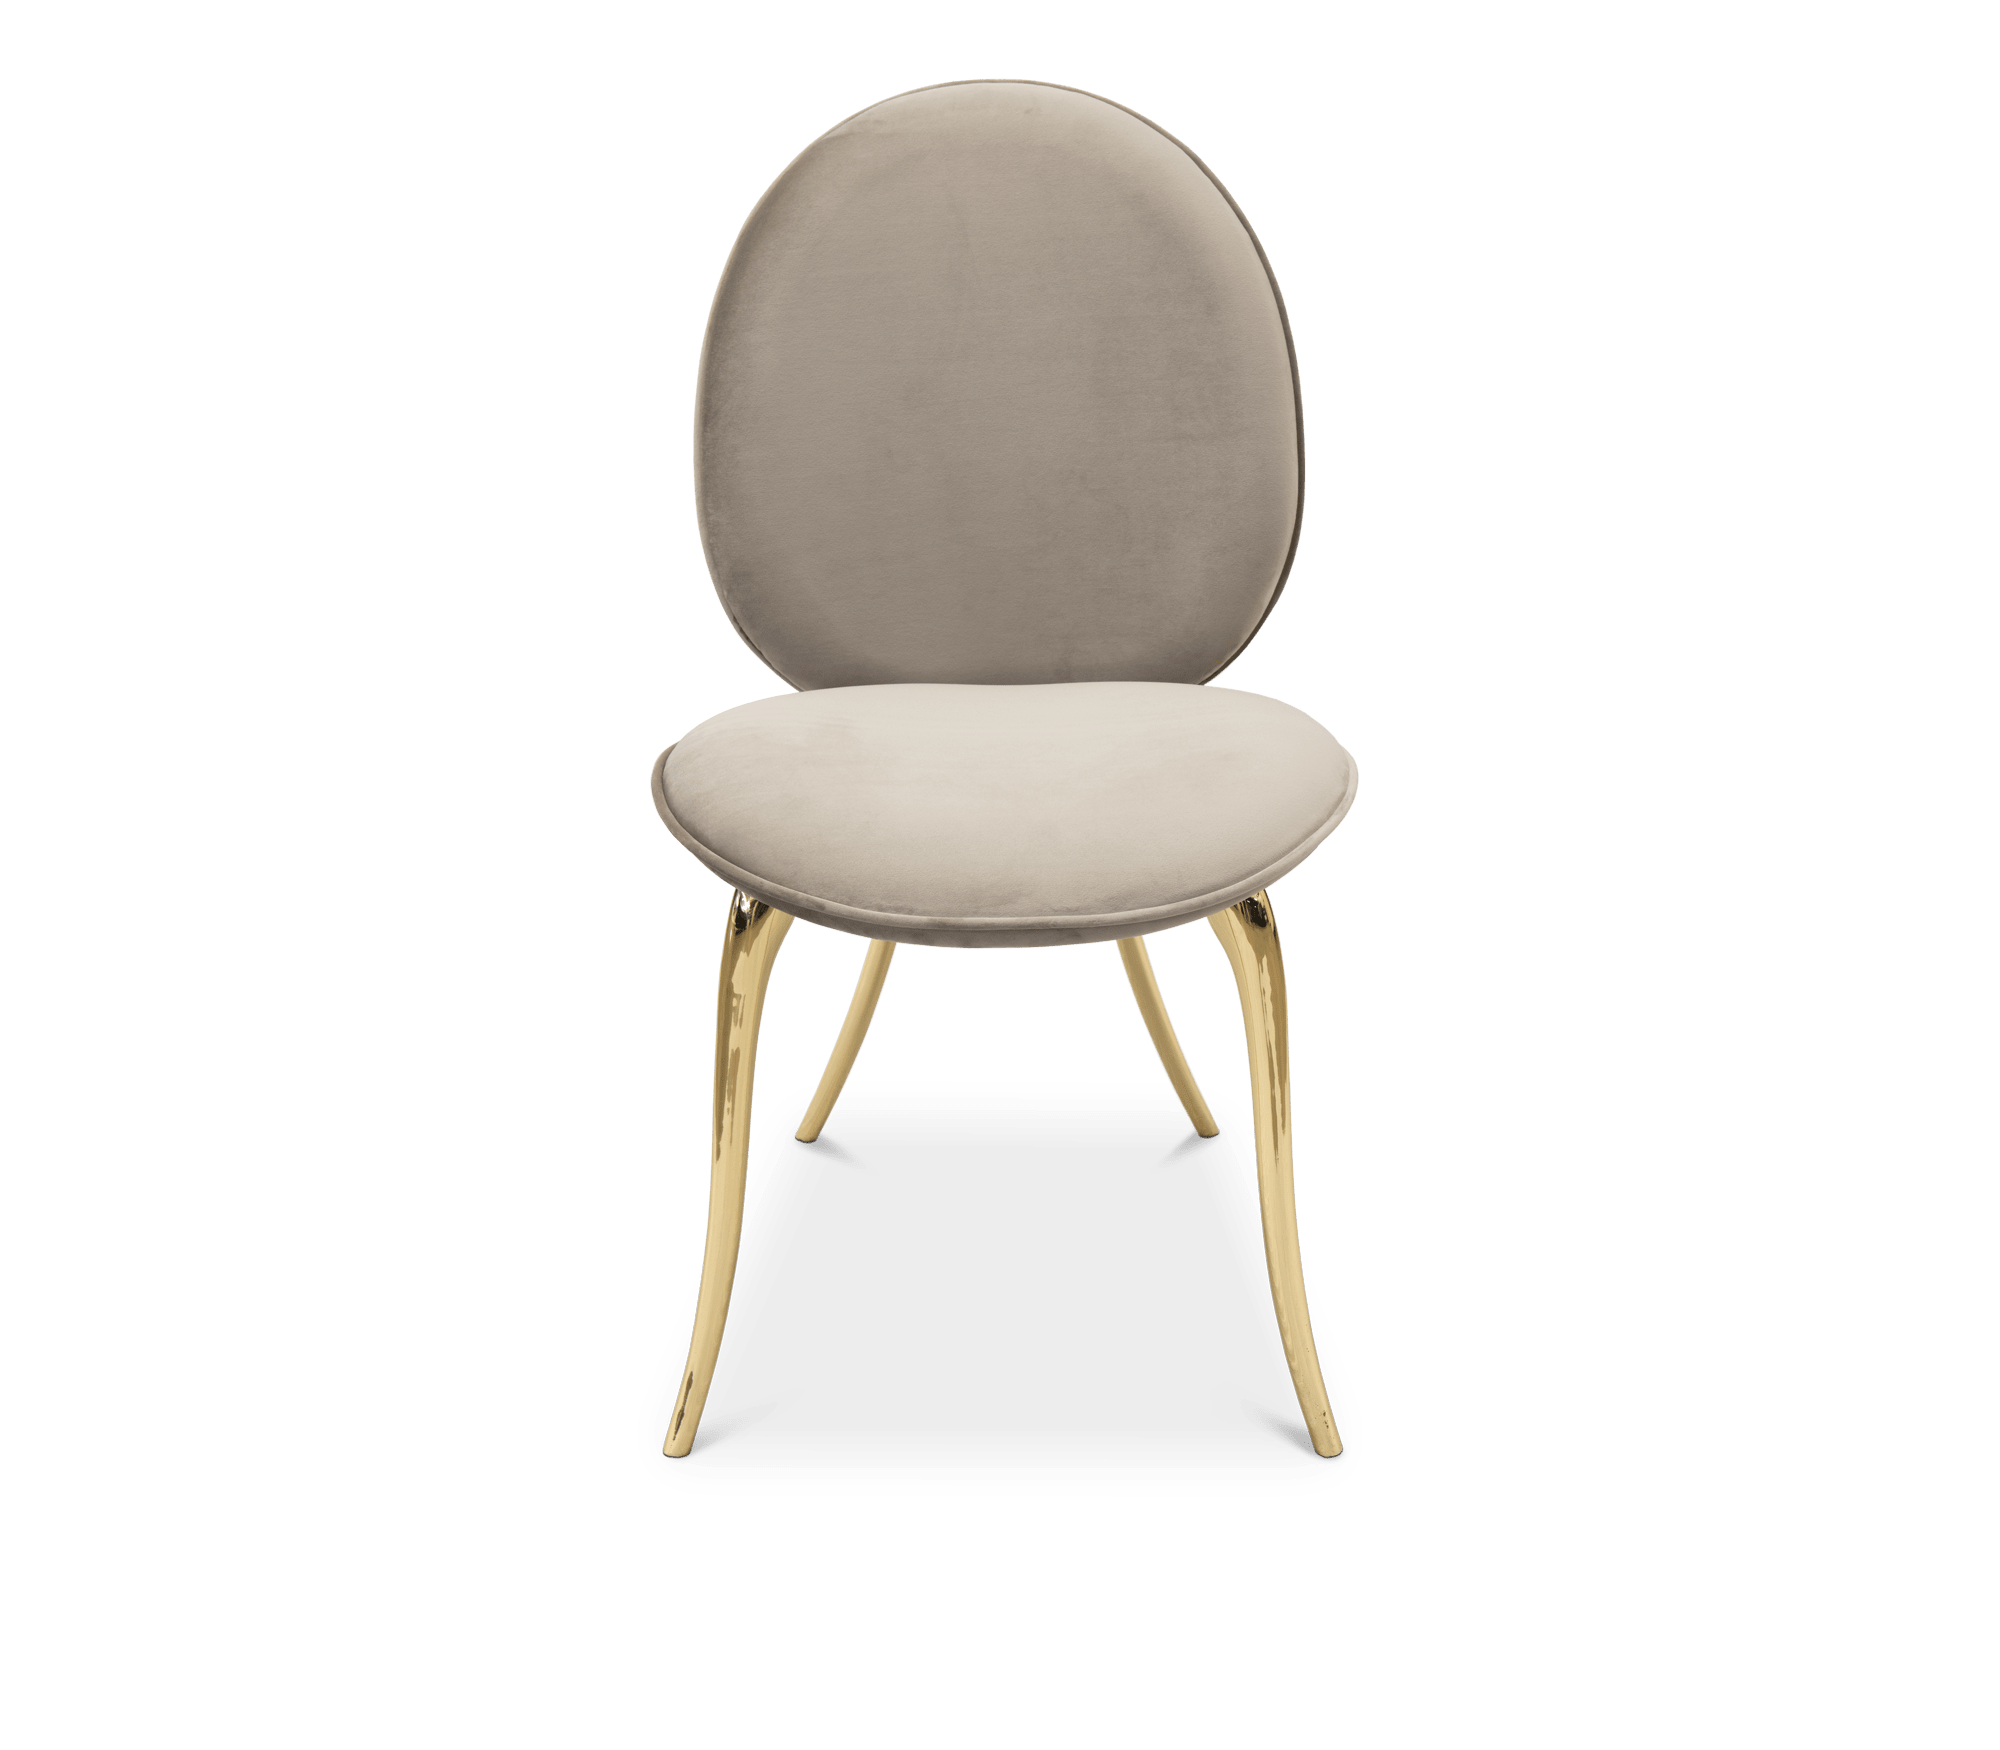 Soleil Cream Chair by Boca do Lobo